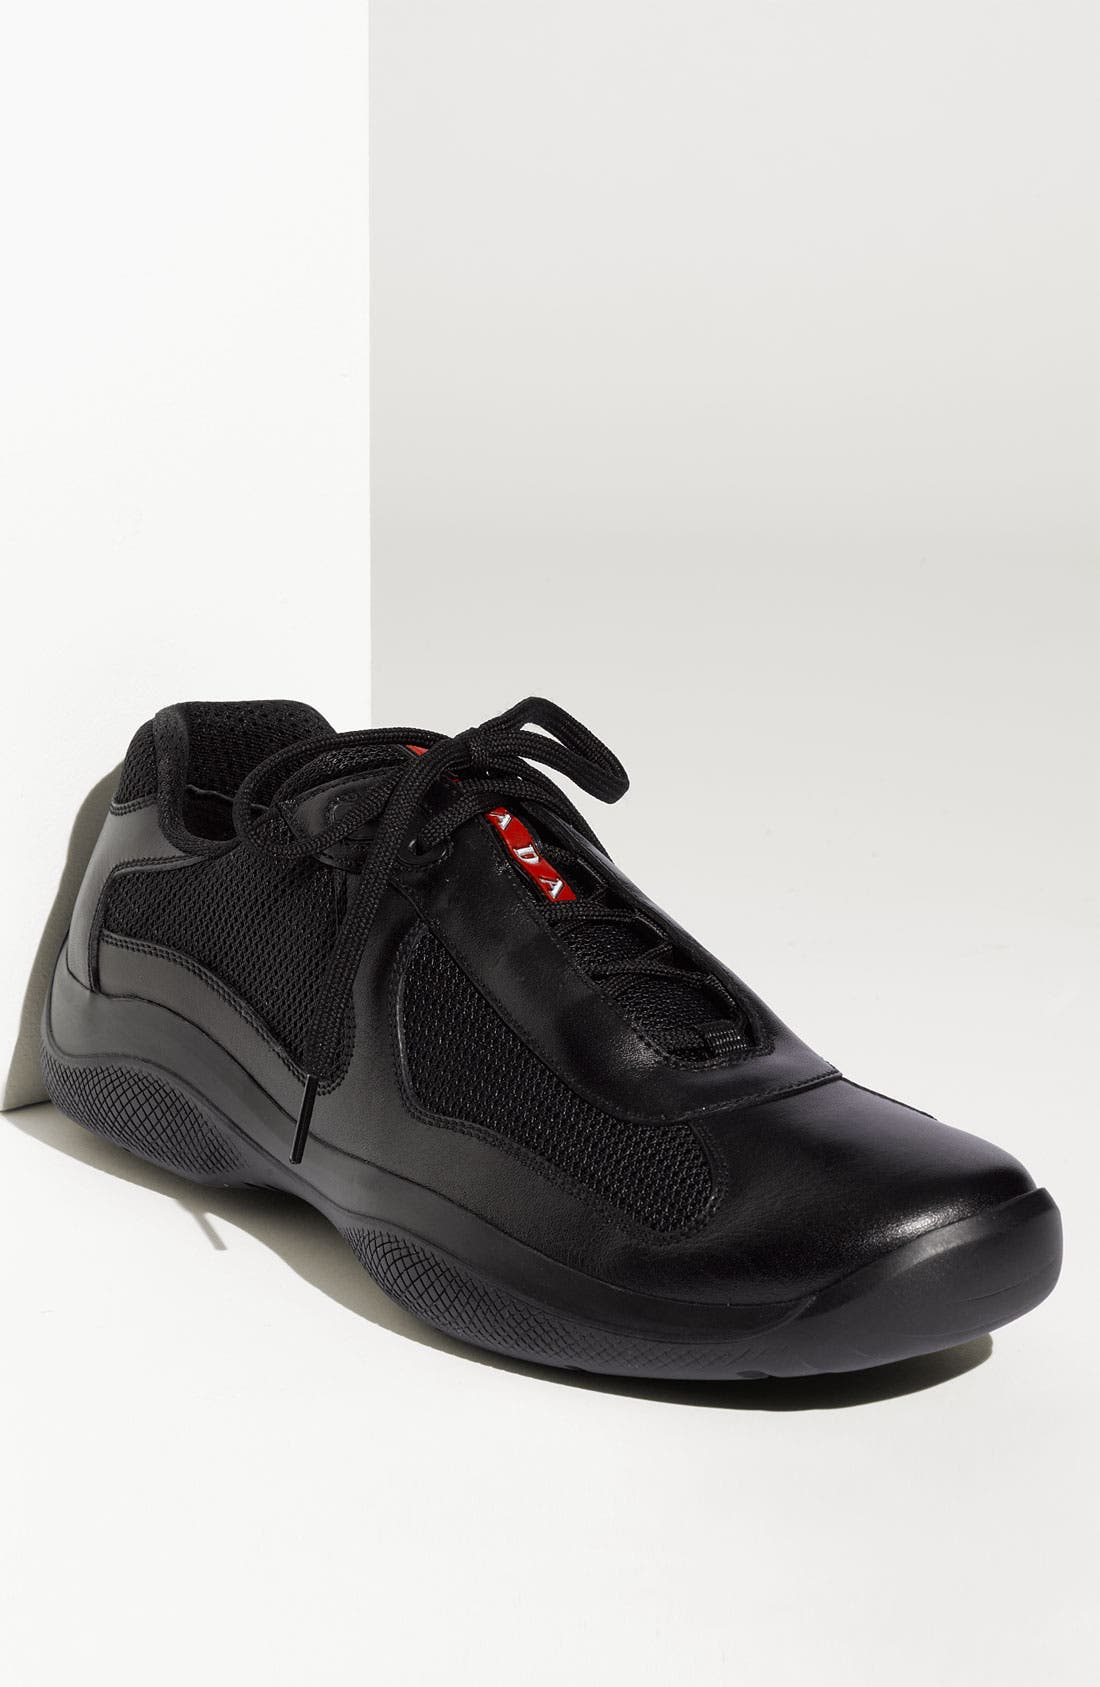 Main Image - Prada 'America's Cup' Mesh & Leather Sneaker (Men)